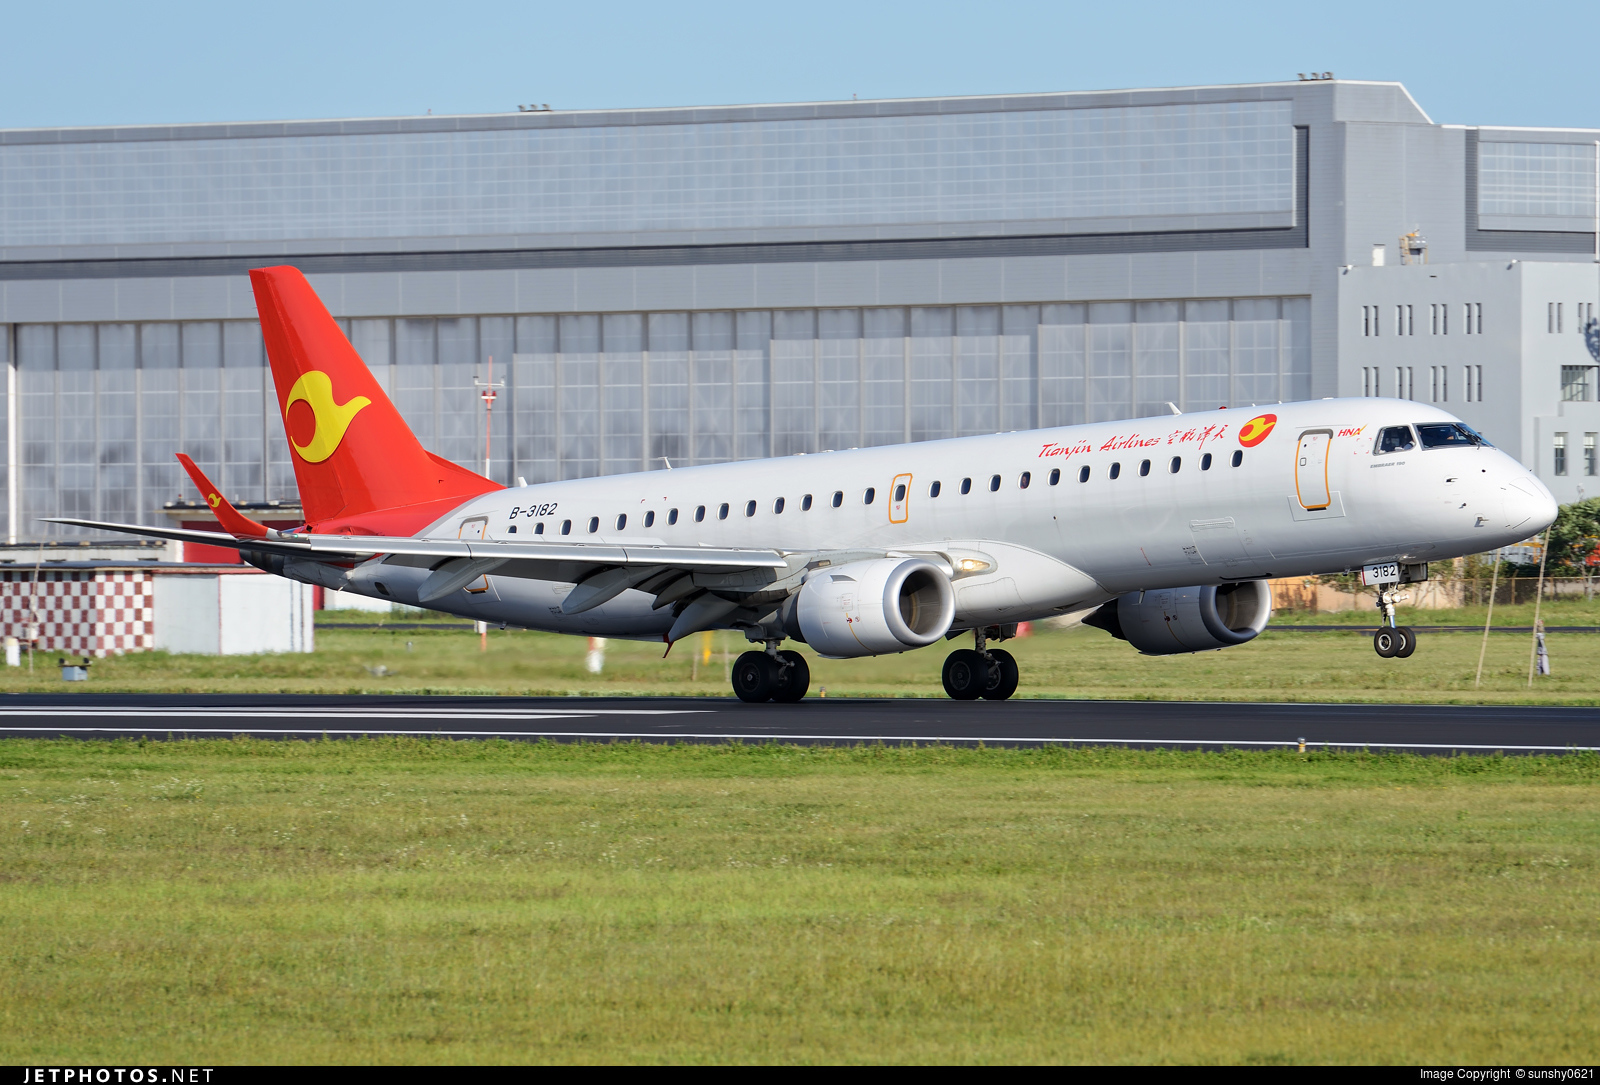 B 3182 Embraer 190 100lr Tianjin Airlines Sunshy0621 Jetphotos Airport